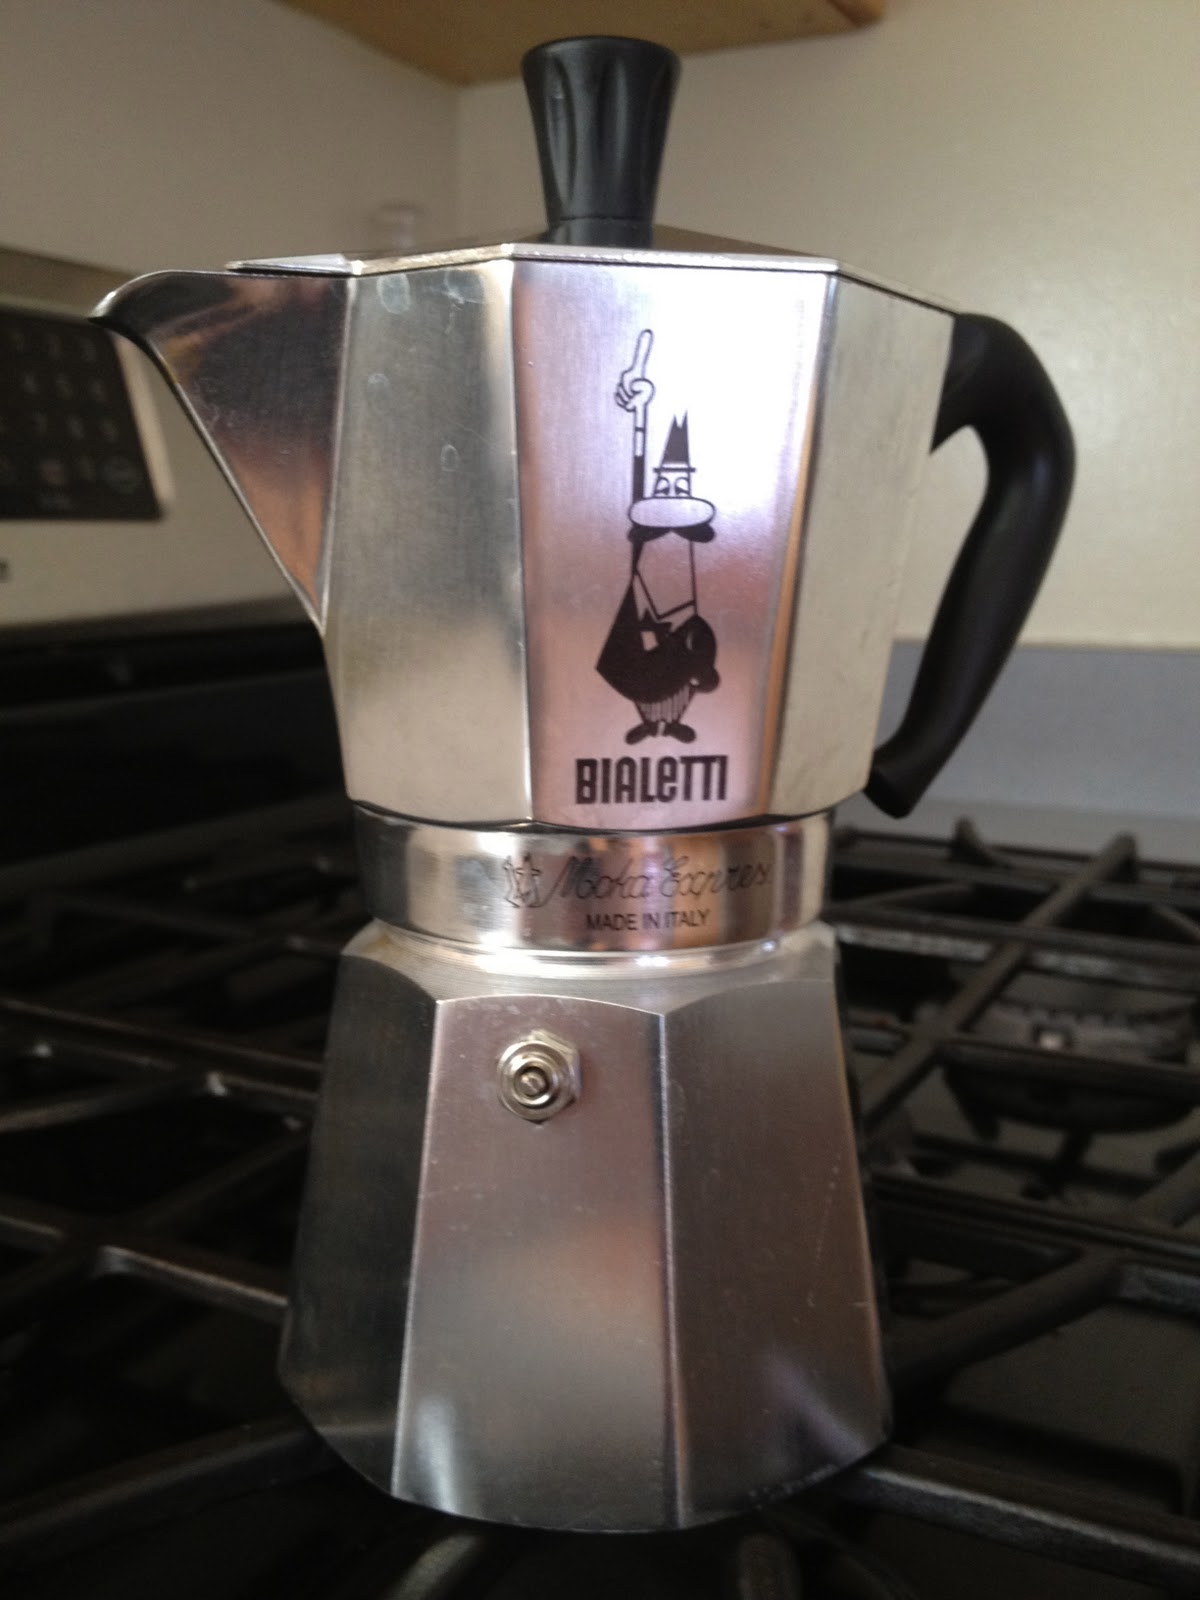 italy daydreaming bialetti espresso maker. Black Bedroom Furniture Sets. Home Design Ideas